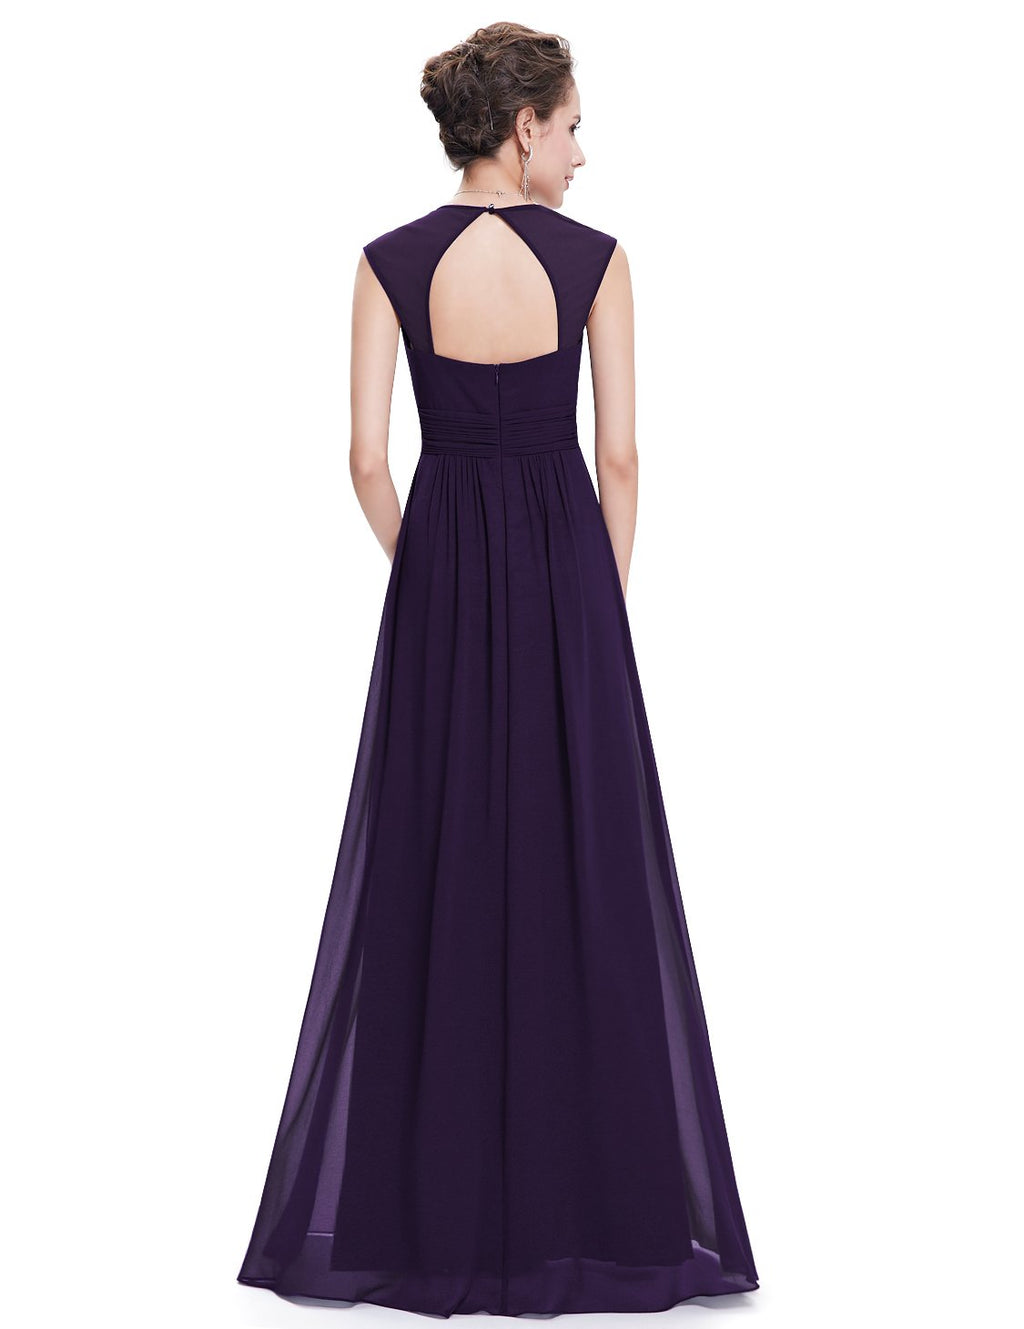 Sexy Neckline Dress Dark Purple